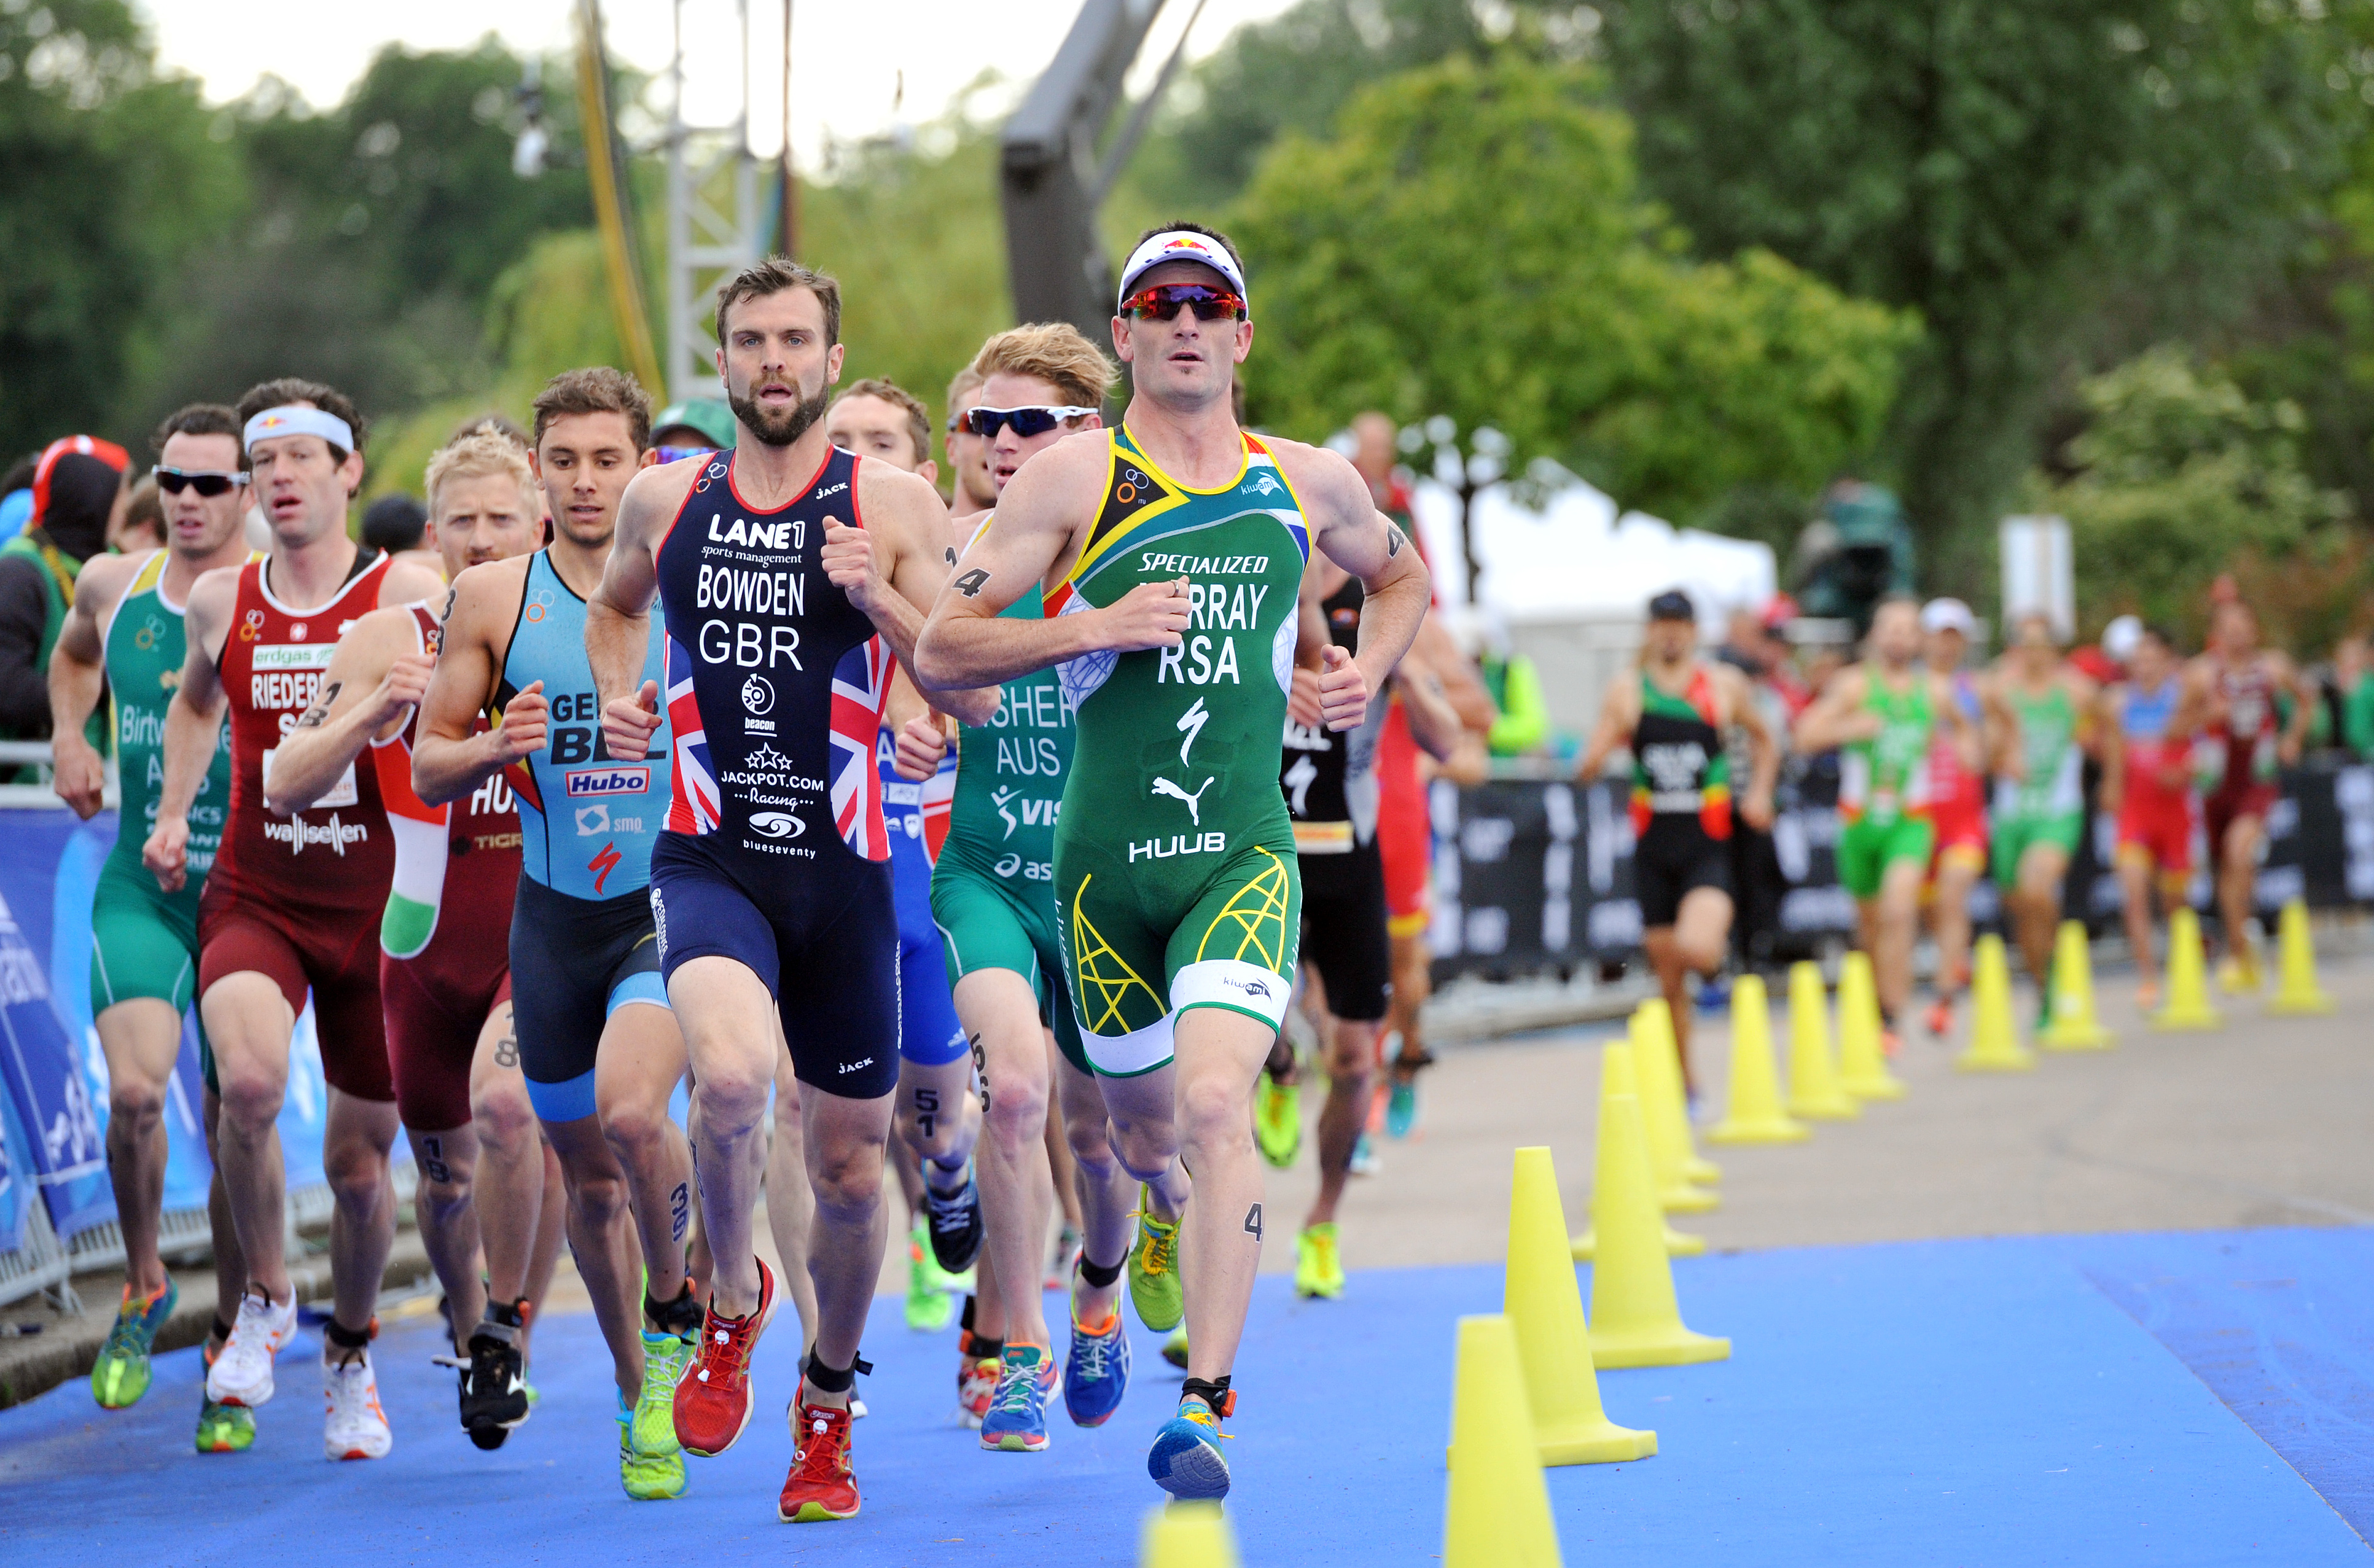 SA shines at London triathlon event with two men in top 10